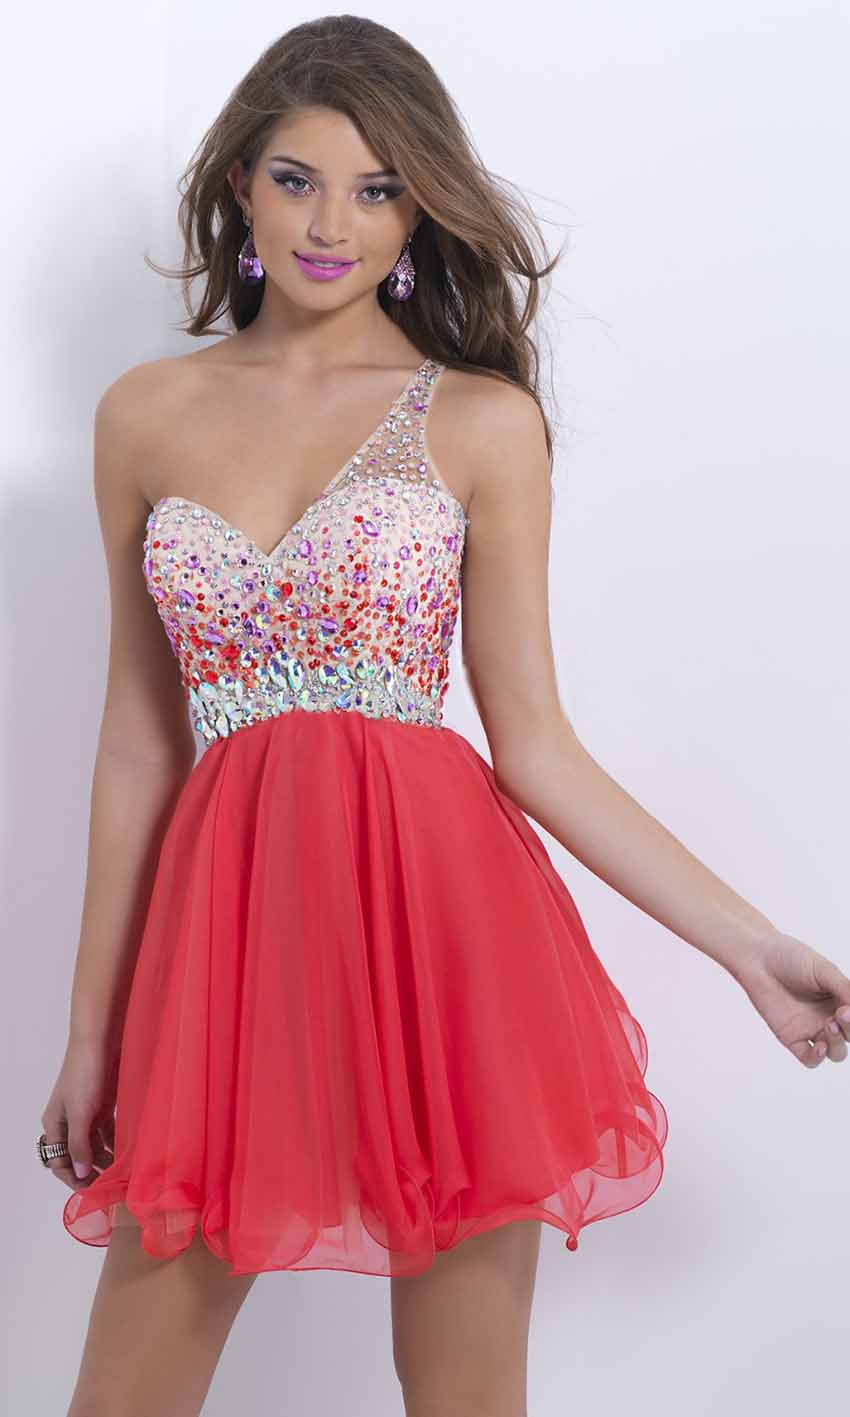 f1532ab85528 Amazing Rhinestone One Shoulder Short Red Prom Dress UK KSP386  KSP386  -  £97.00   Cheap Prom Dress ...